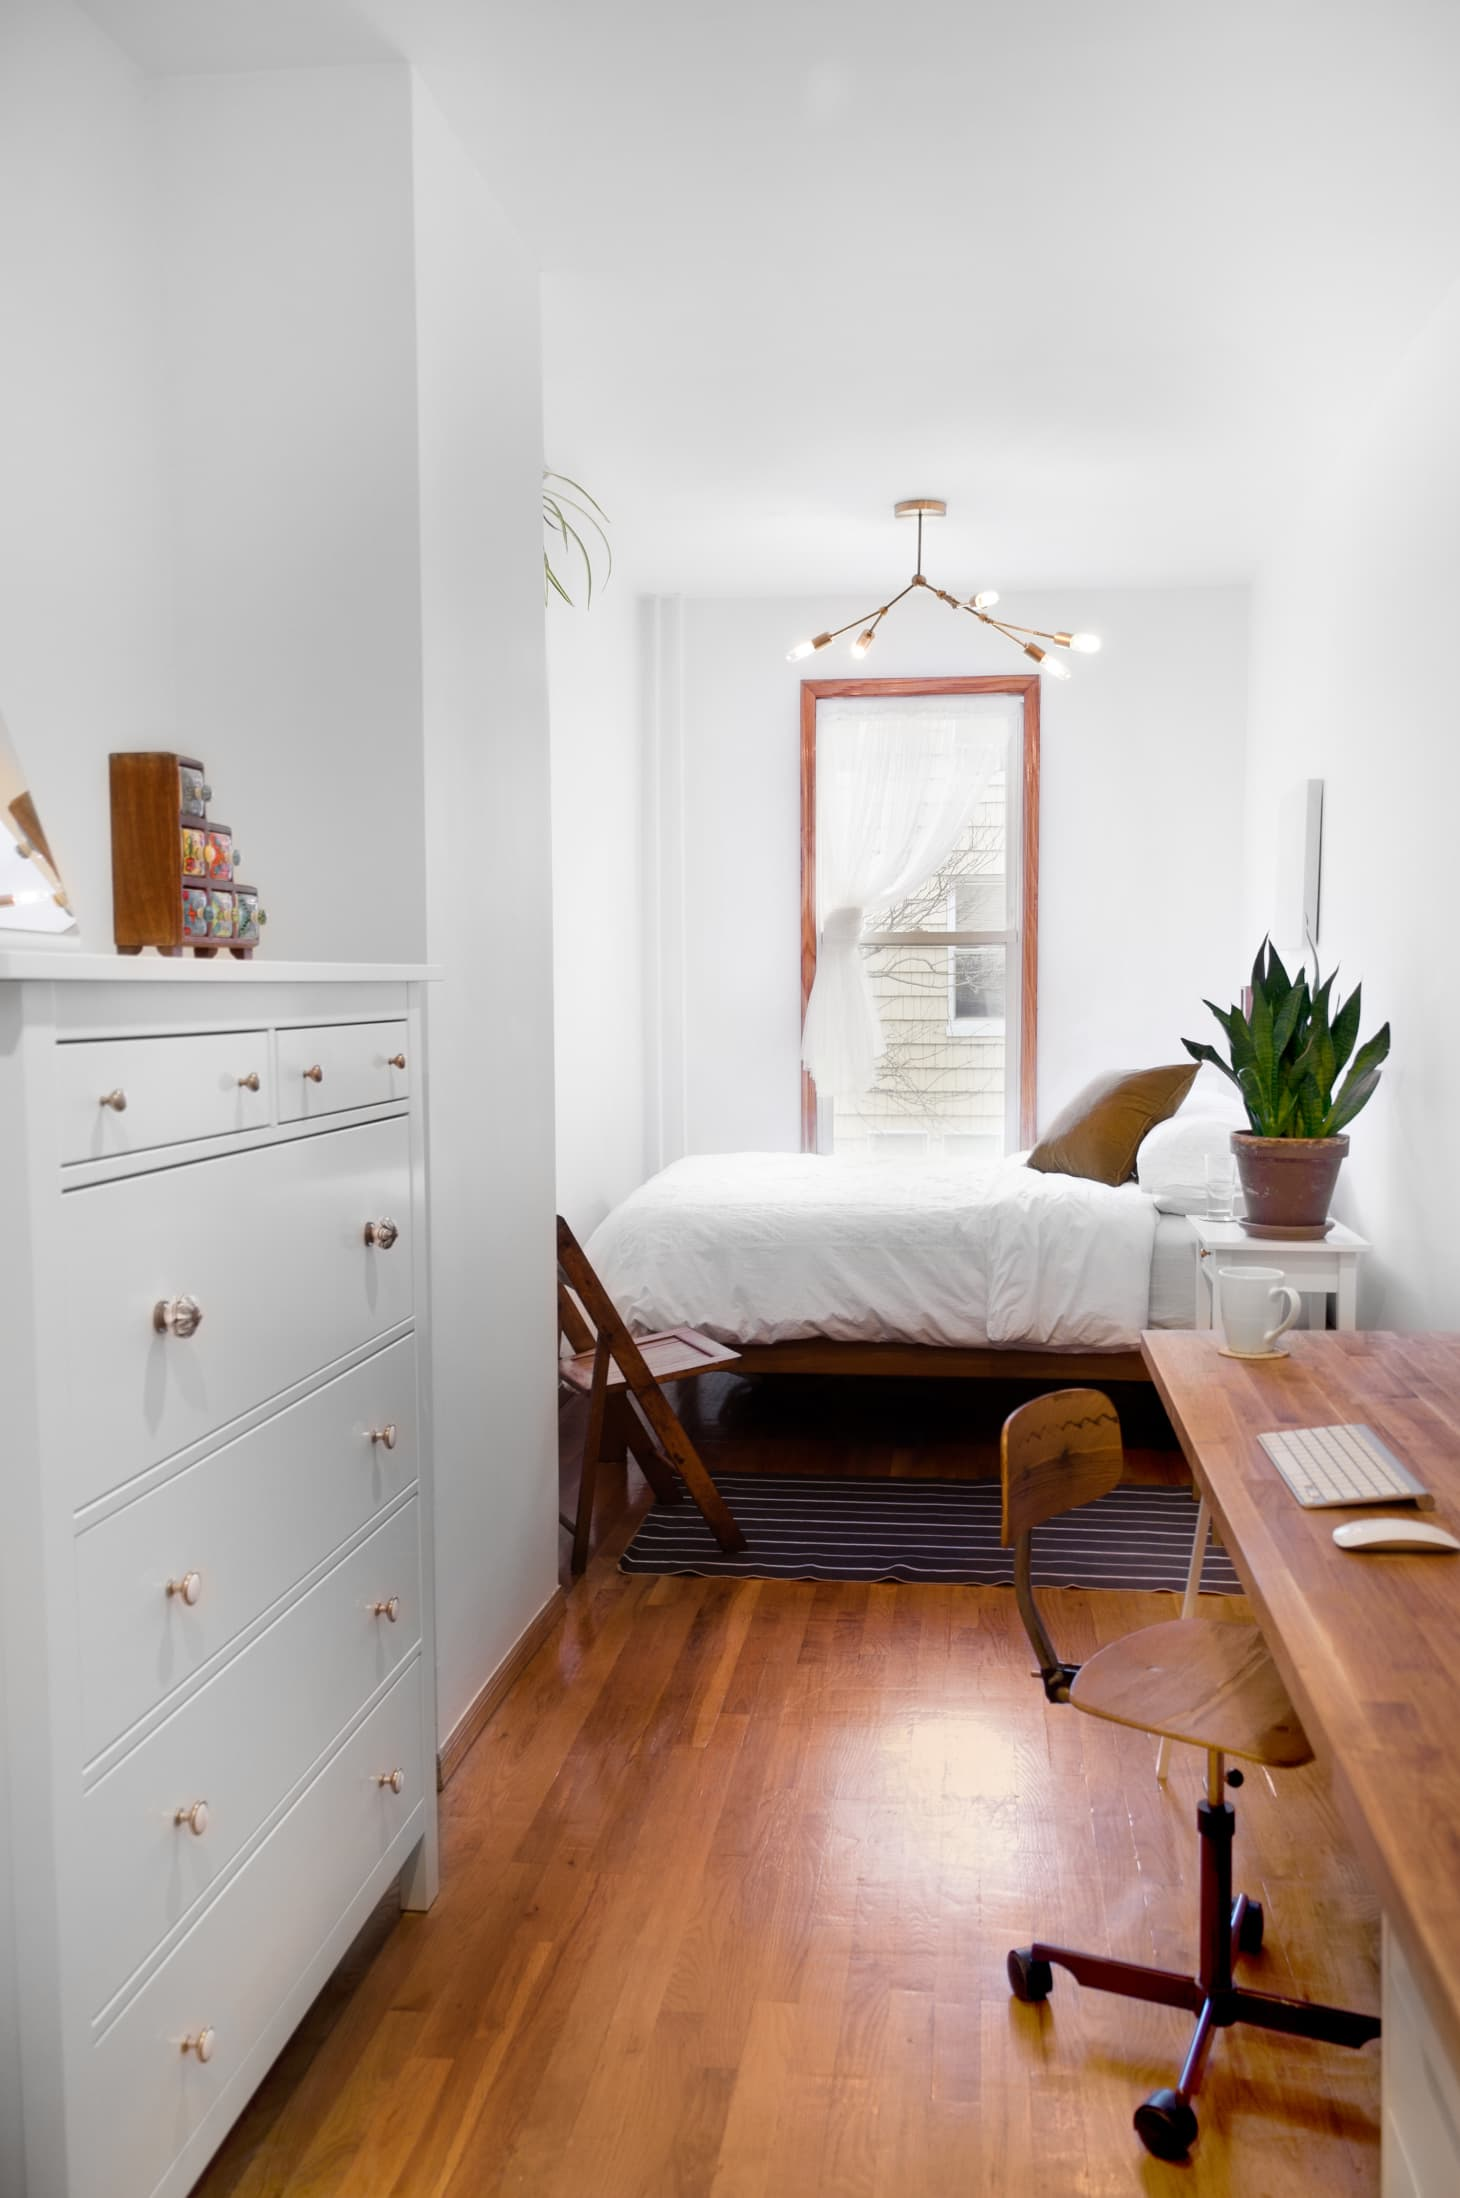 Space Saving Ideas For Small Bedroom